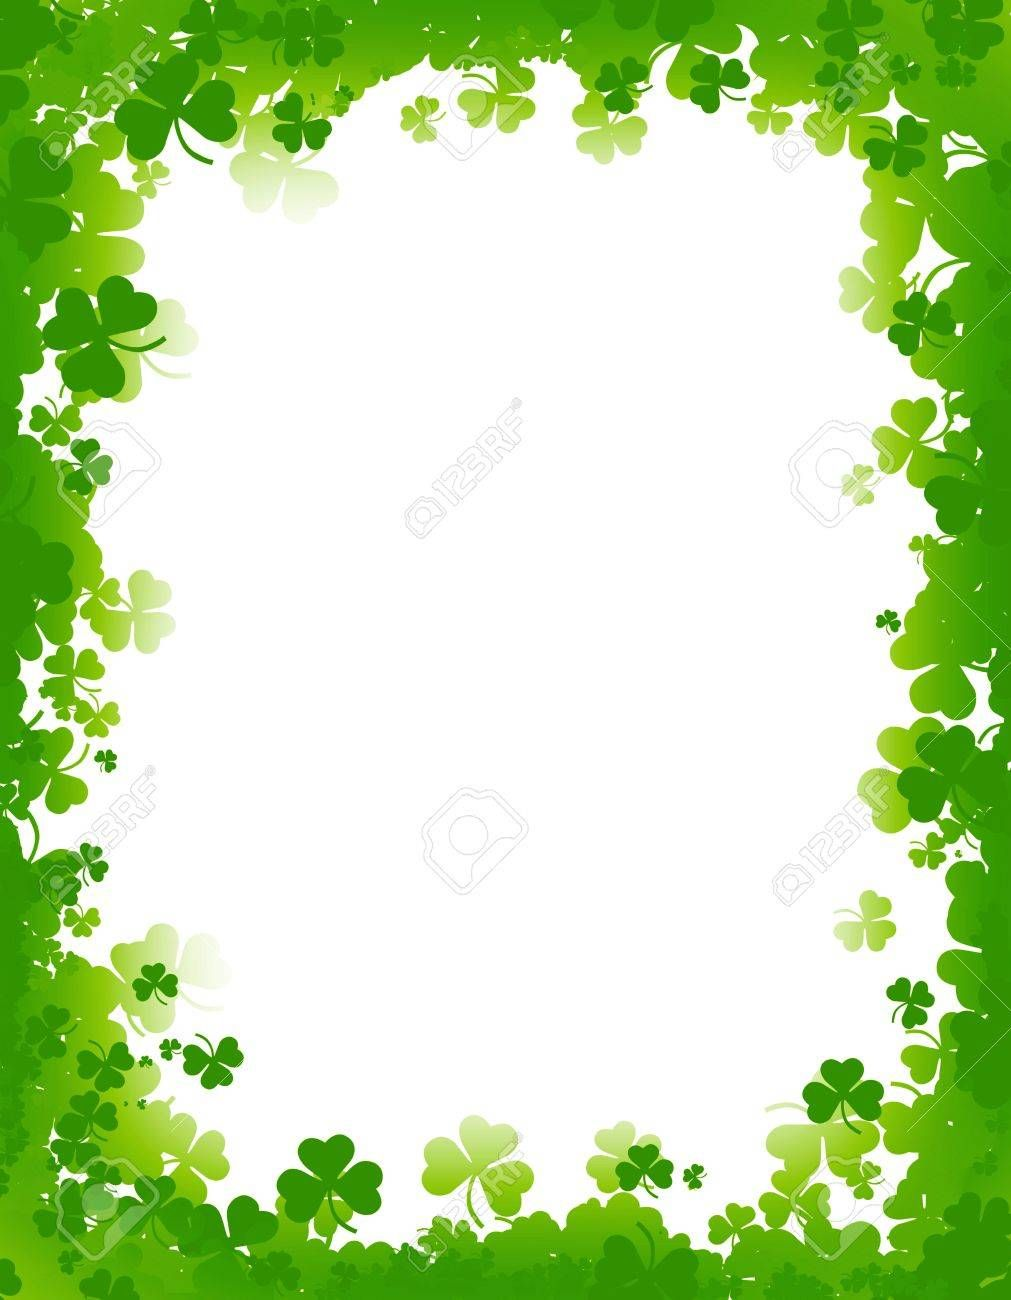 St Patricks Day Clipart Banners Borders Free Download in.